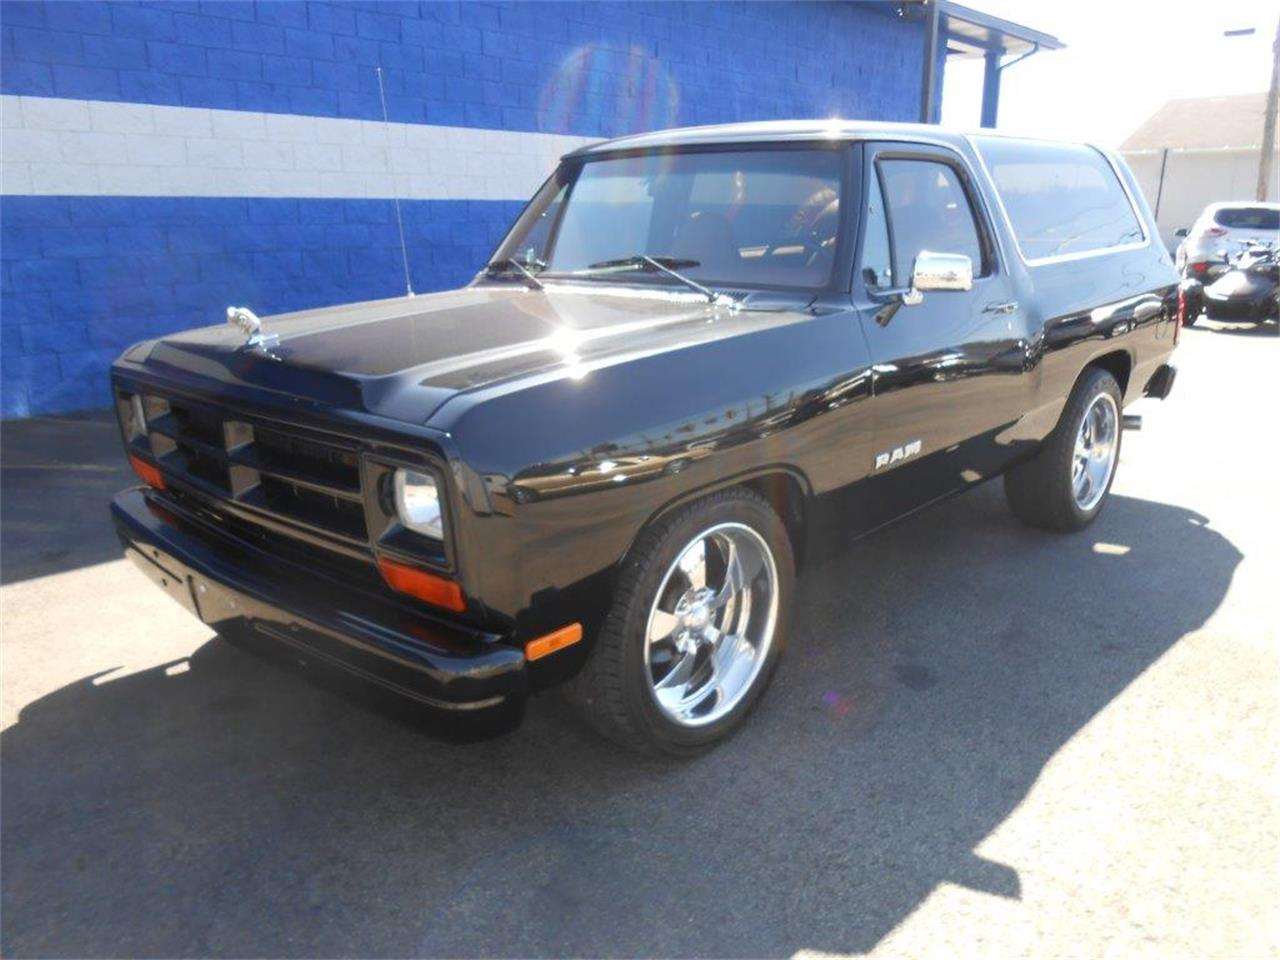 1987 dodge ram charger ad 1 for sale classiccars com cc 989815 1987 dodge ram charger ad 1 for sale